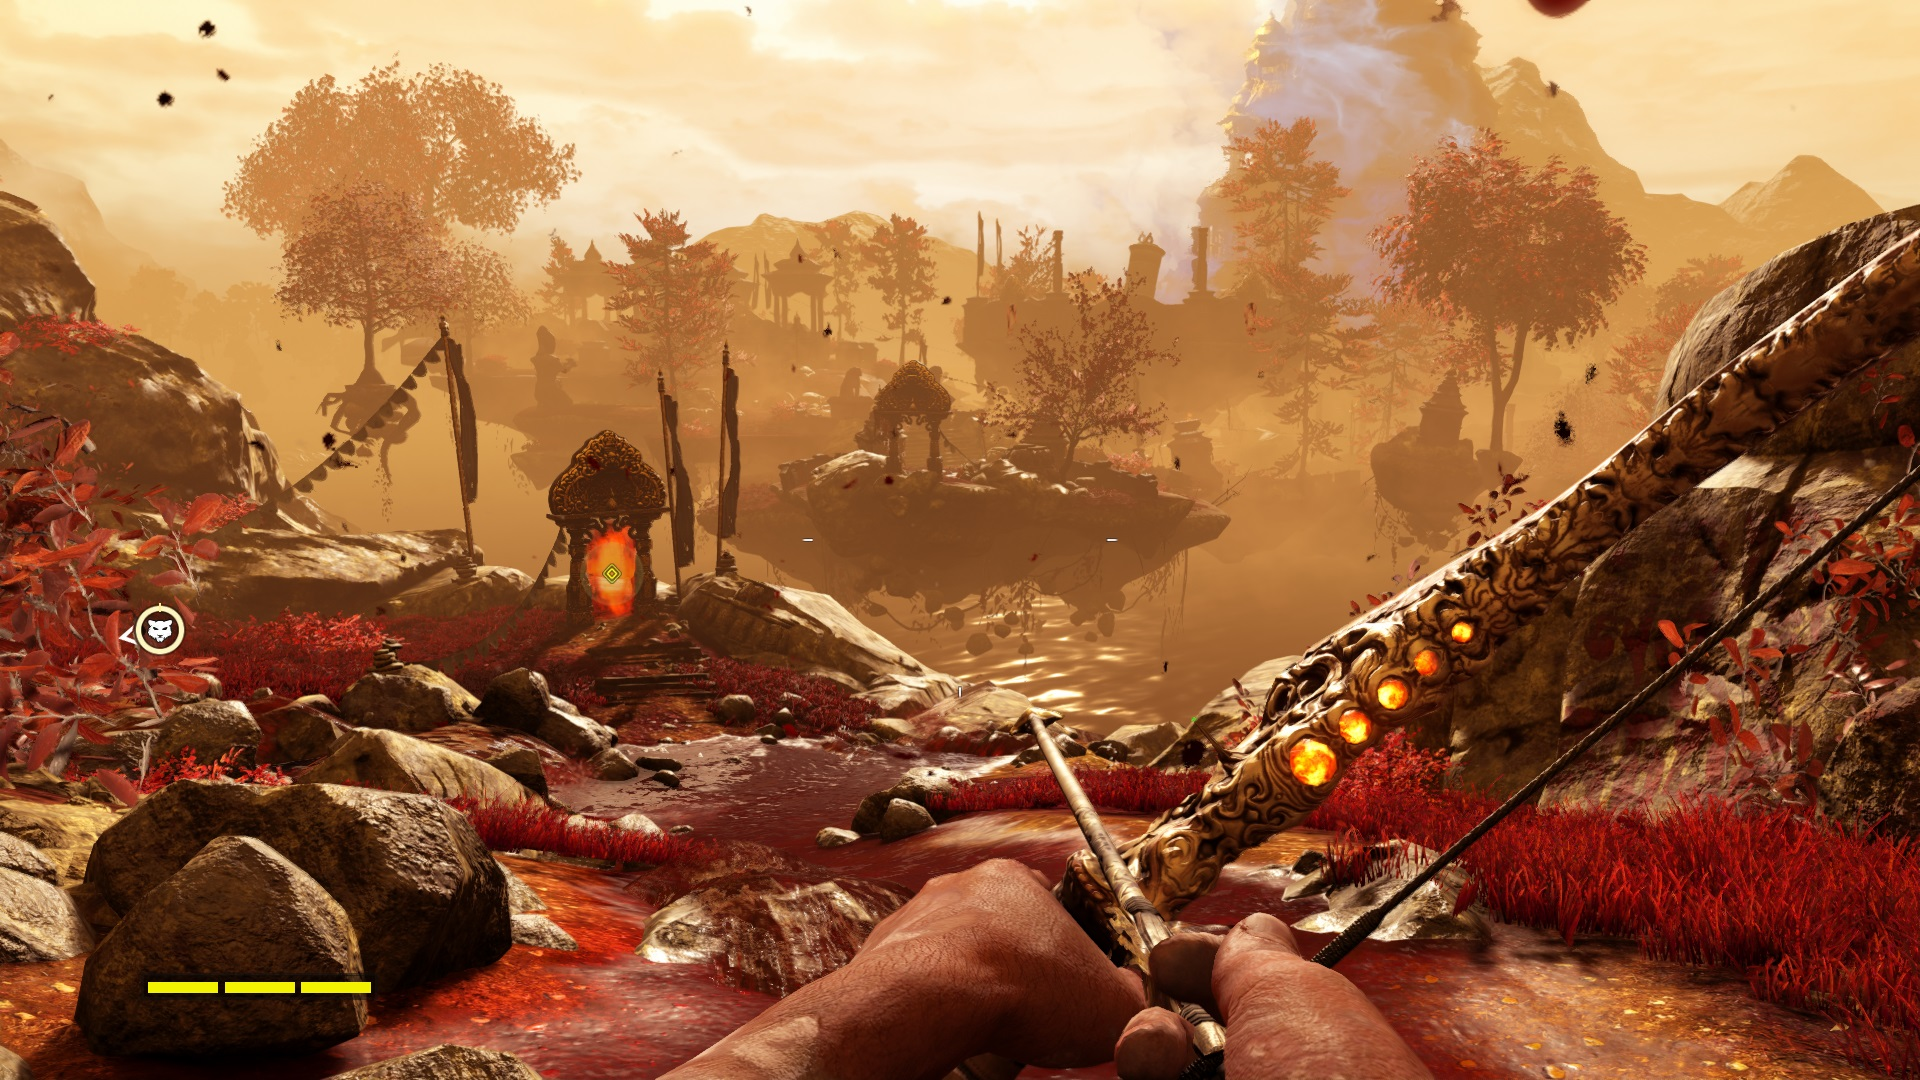 Far cry 4 Wallpapers Backgrounds Images 1920x1080  Best